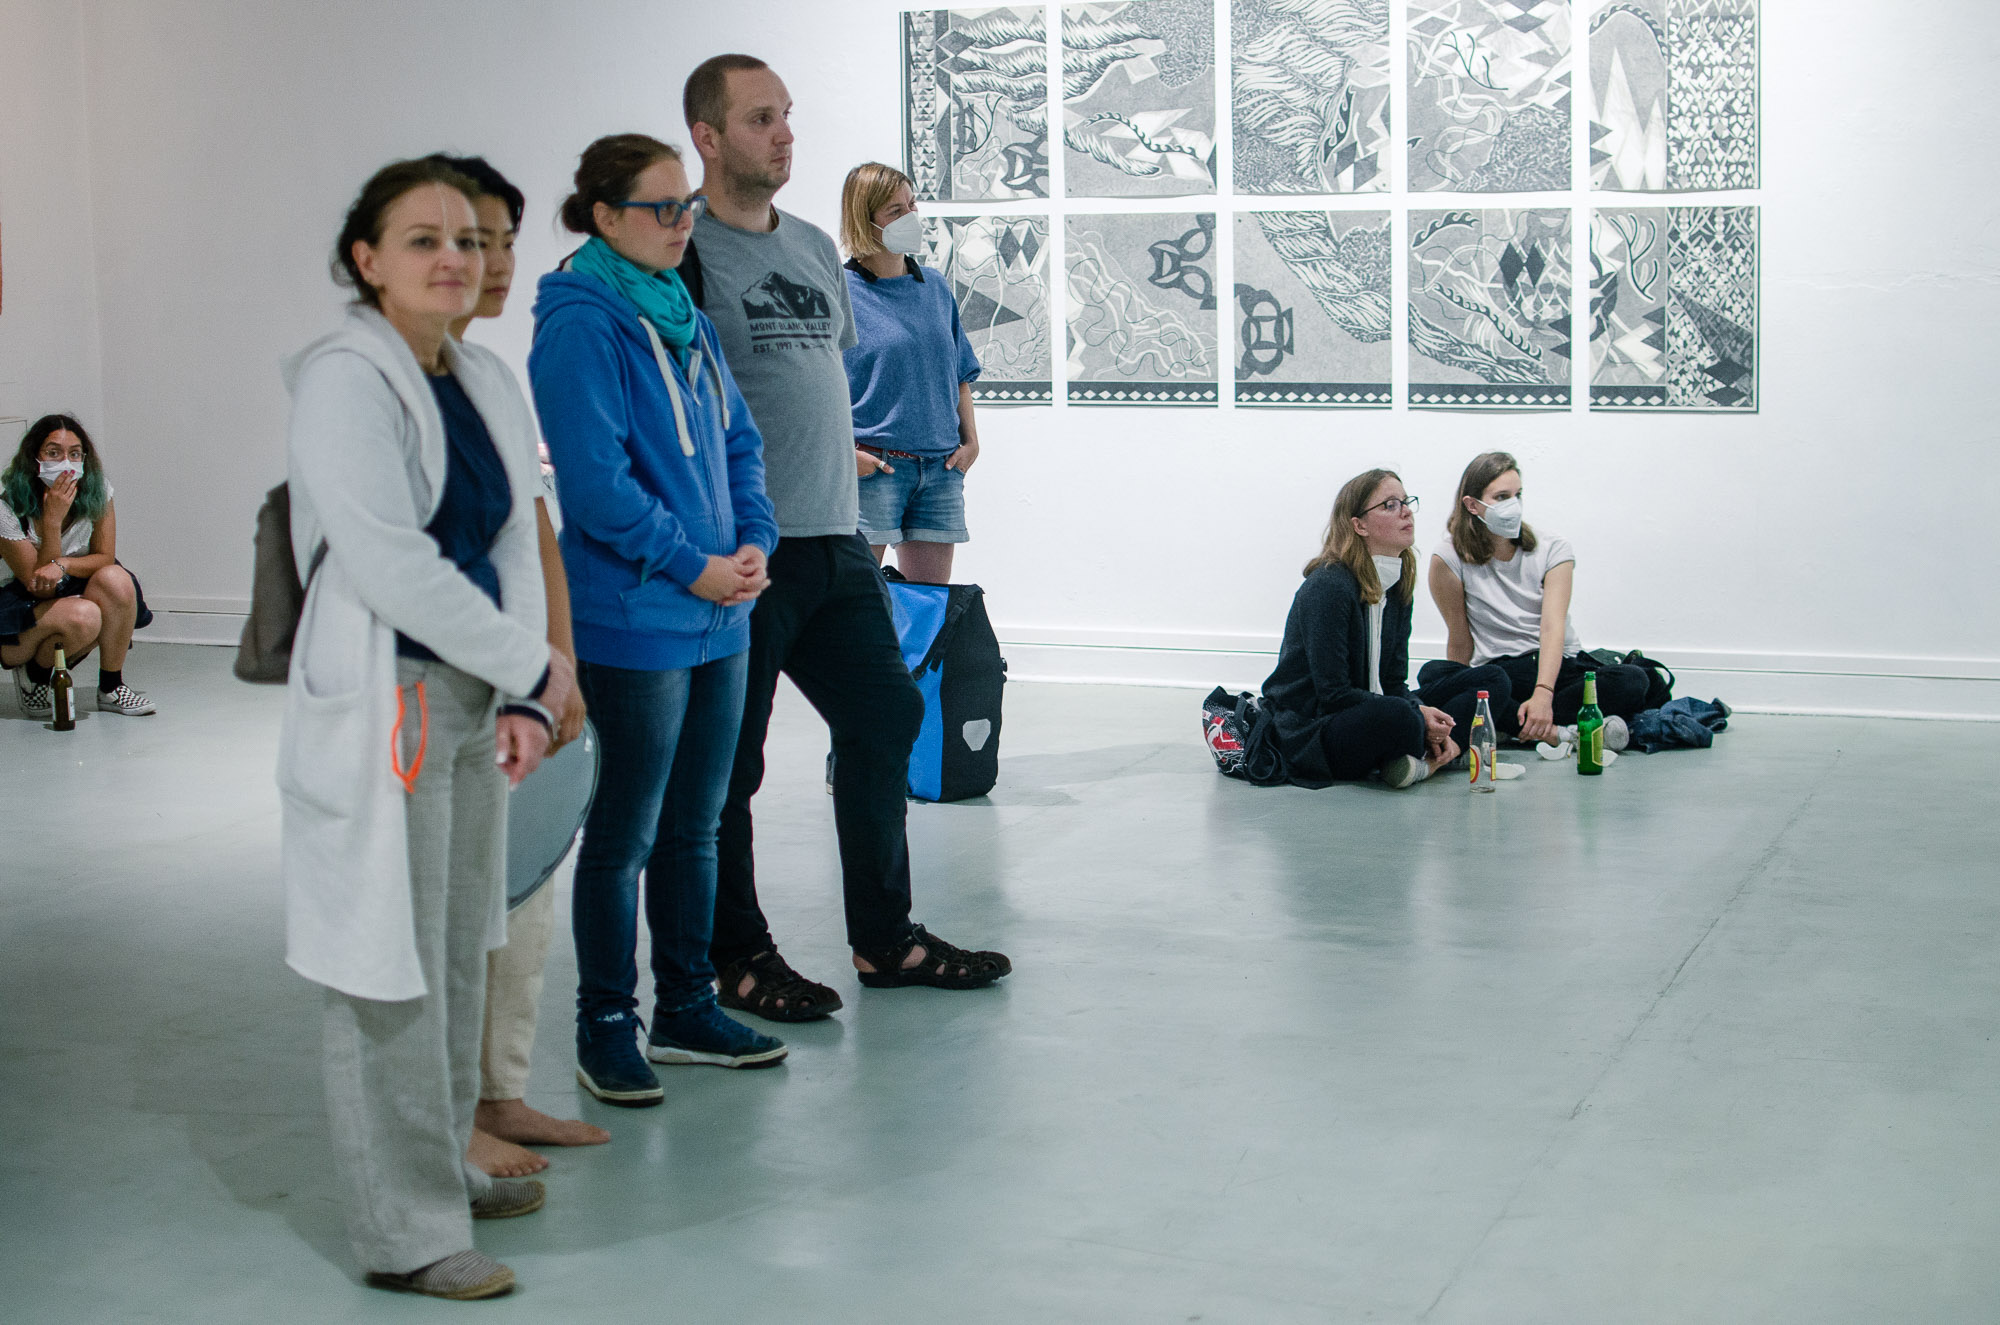 PKRD-48-Airy-Democratic-Spirituality-vernissage-PK-at-Alte-Handlesschule-20.08.21-Fanni-Papp-for-PK-11